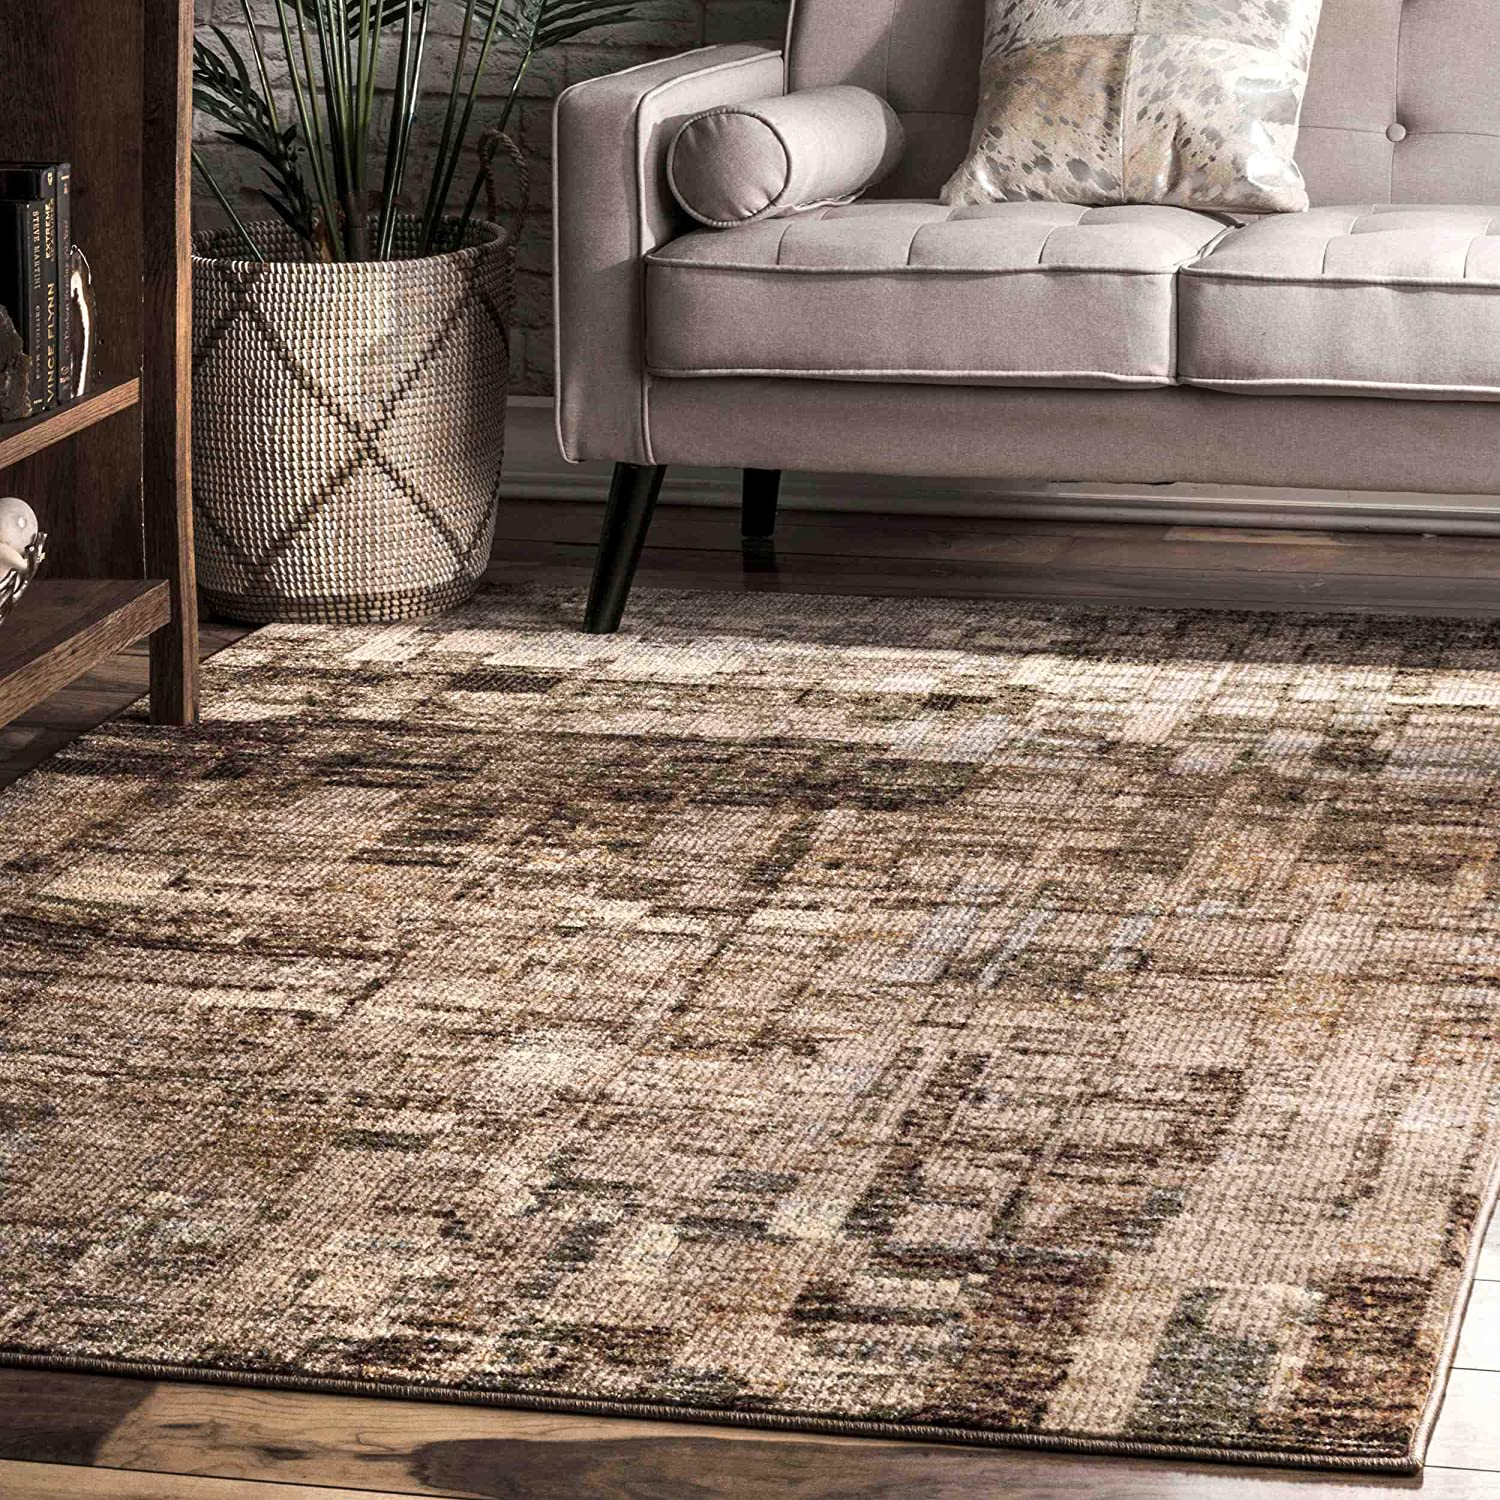 Amazon Com Nuloom Lilly Abstract Area Rug 8 10 X 12 Brown Furniture Decor